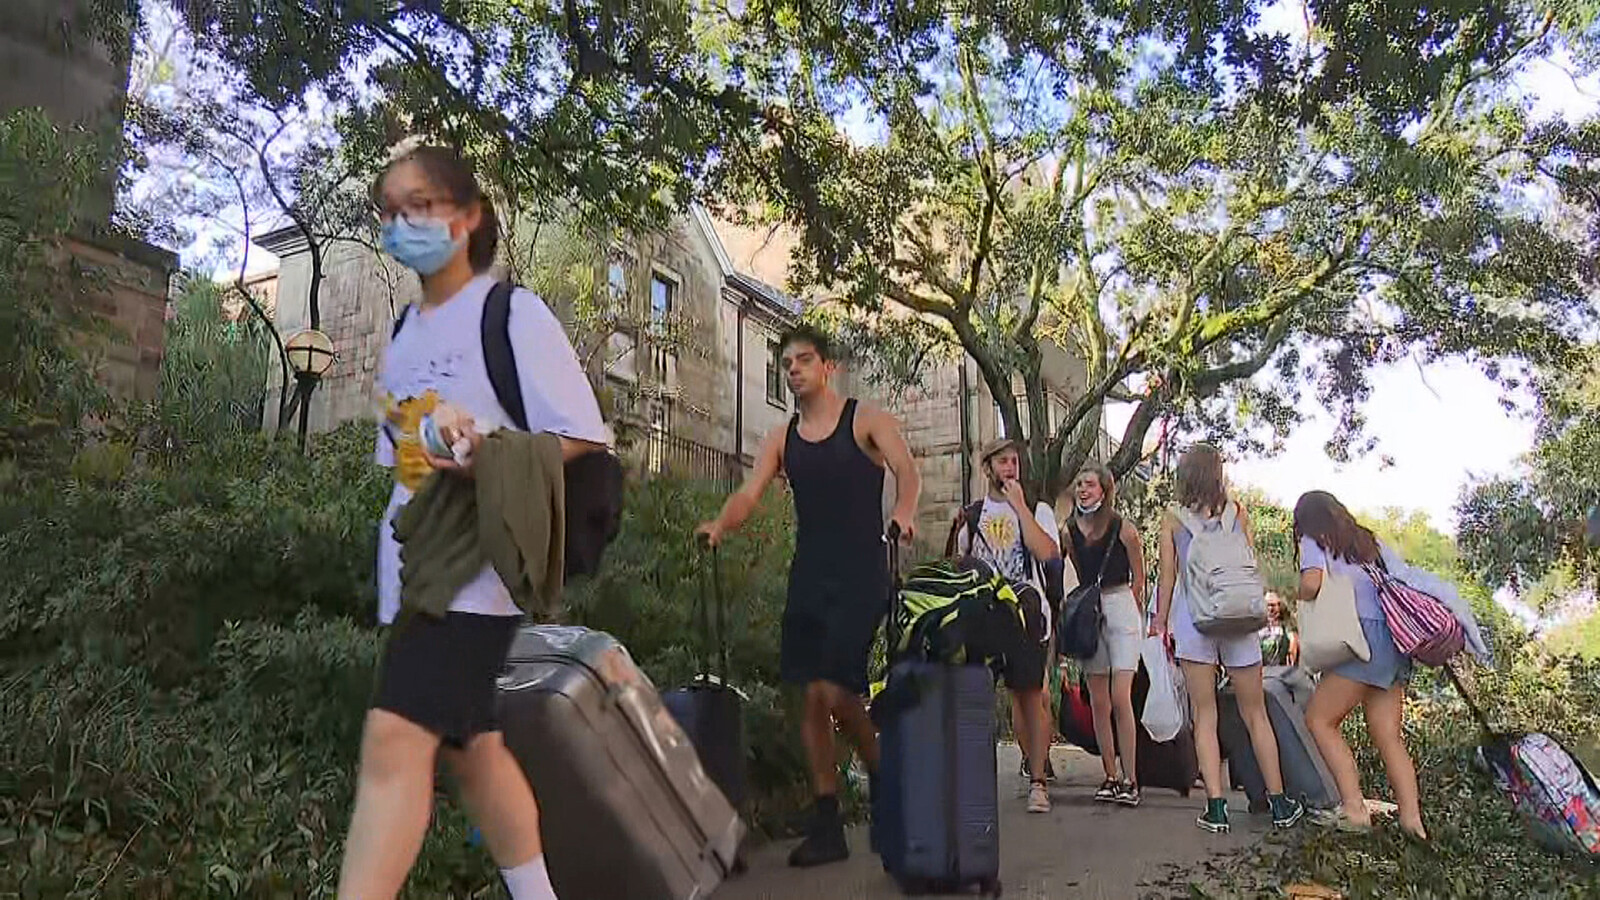 Tulane University relocating students to Houston due to power outages